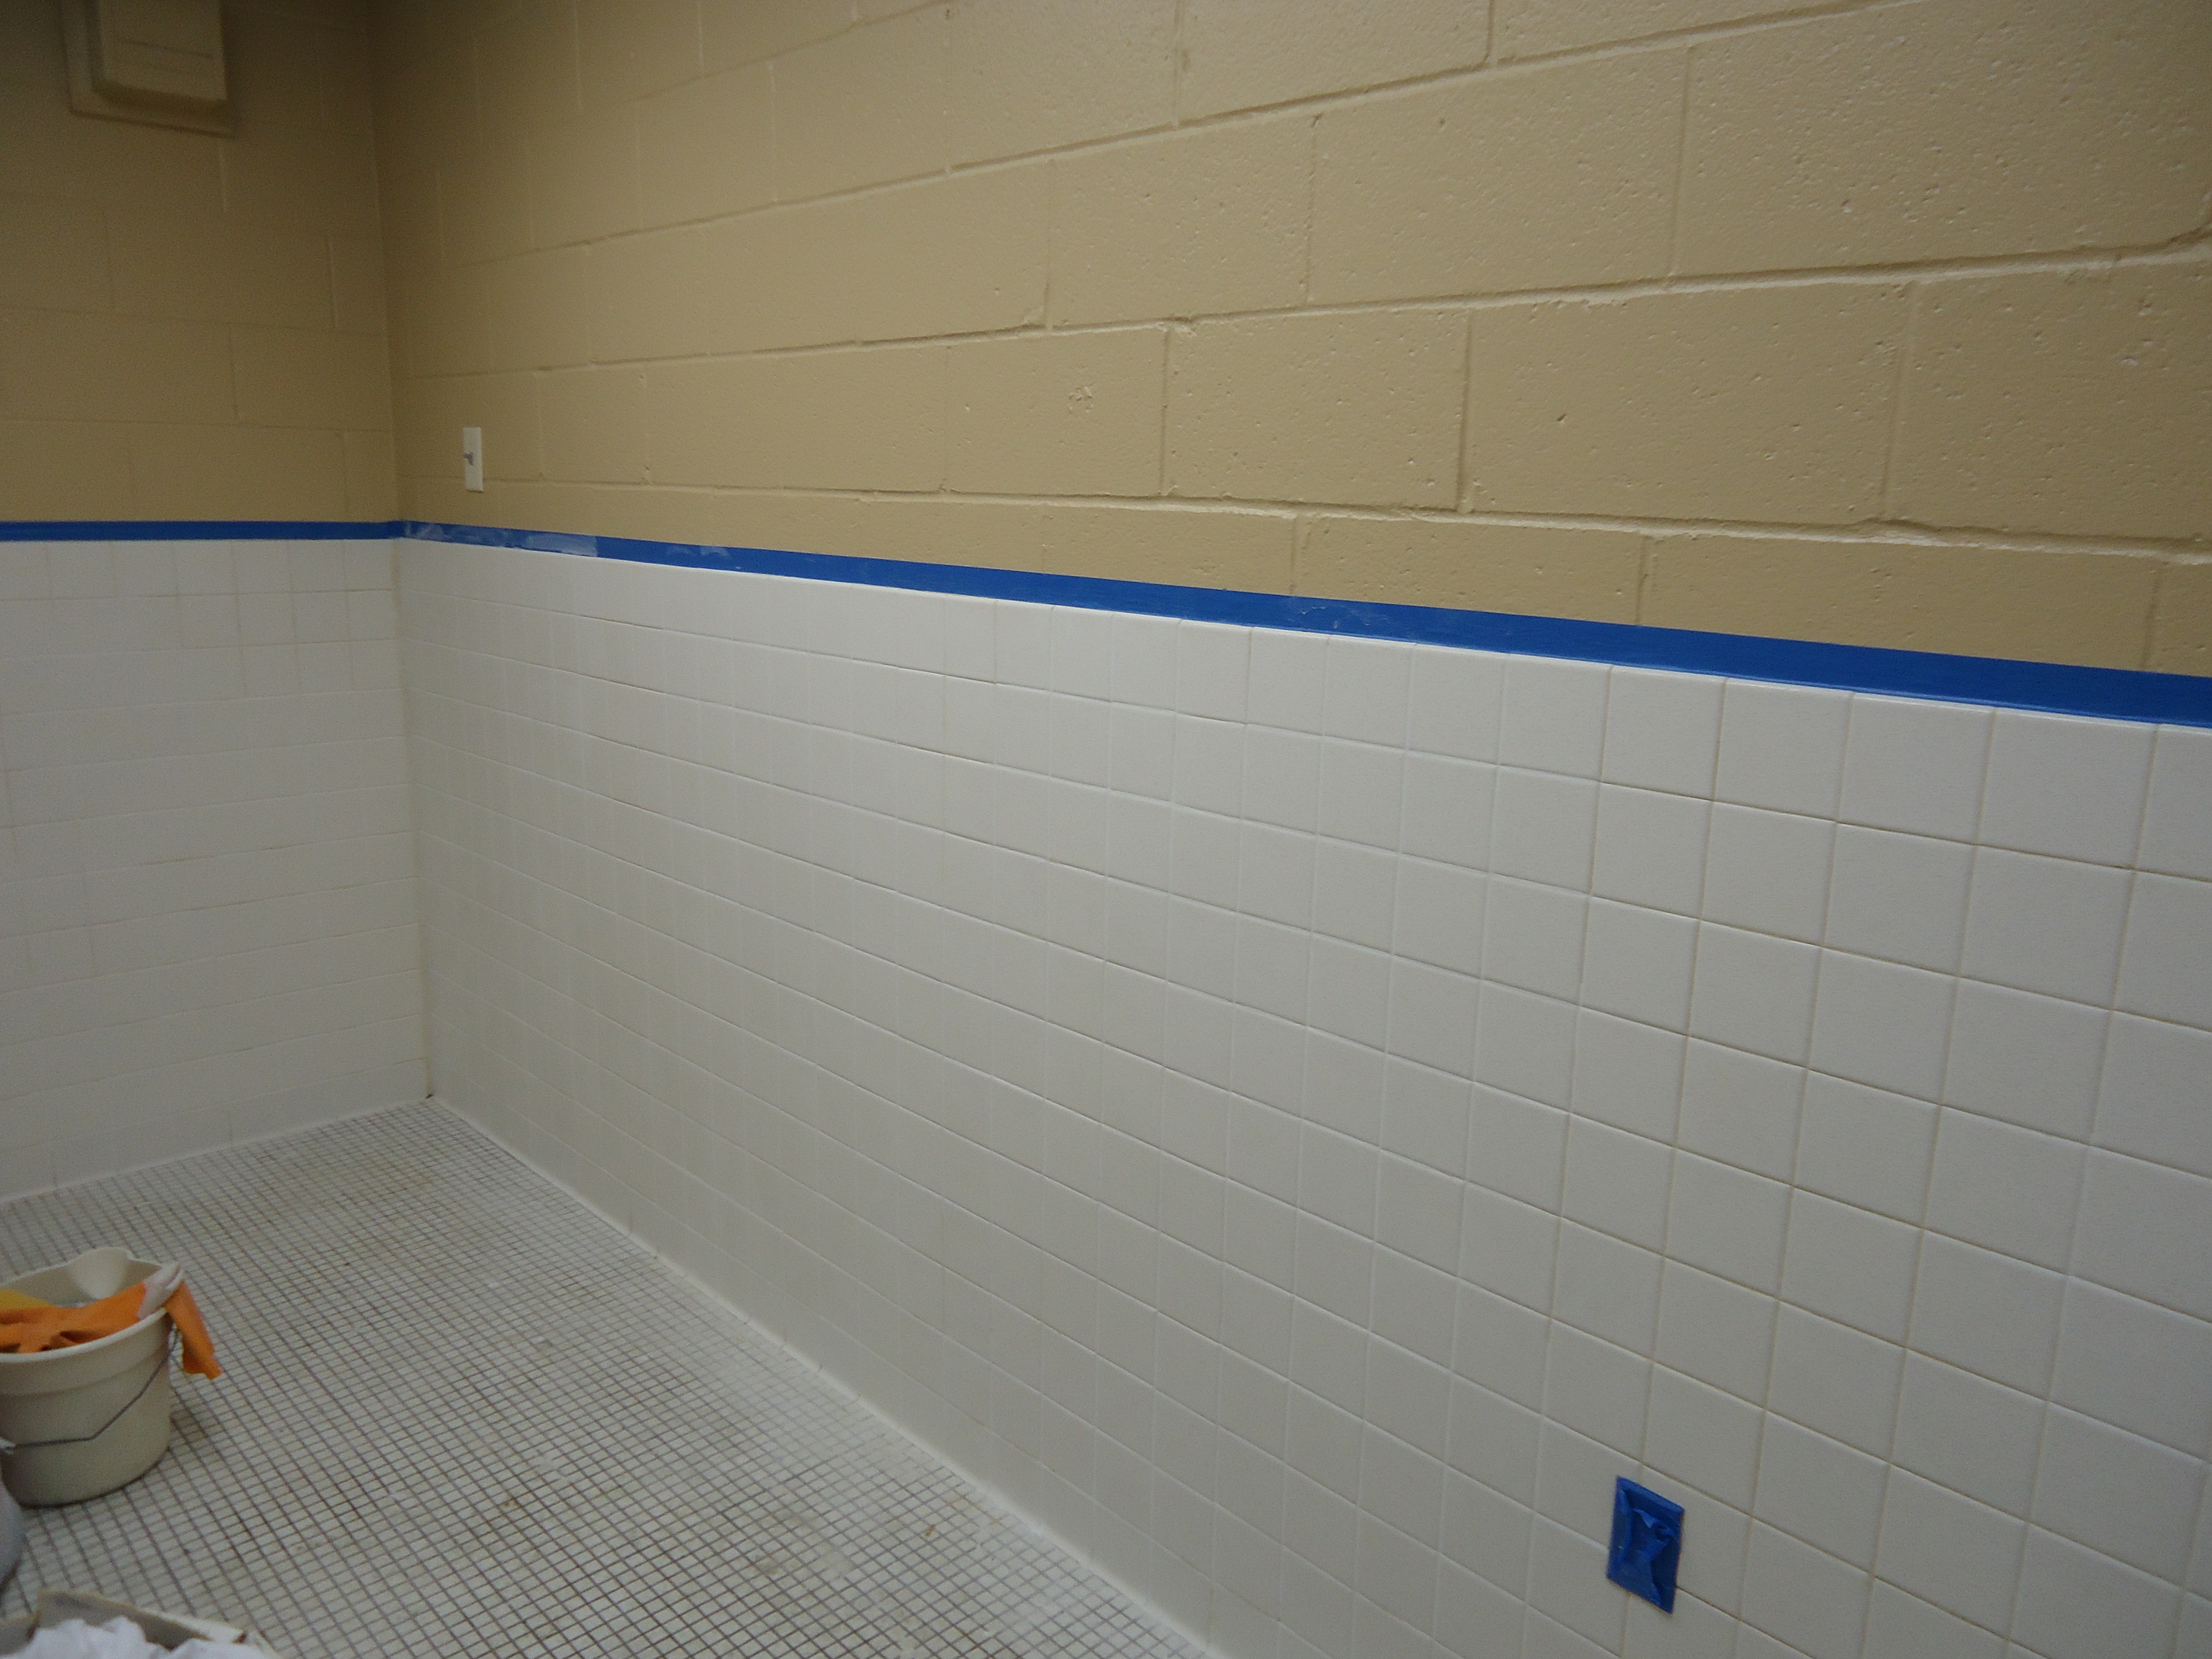 Tile Reglazing First Choice Refinishers First Choice Refinishers - Bathroom tile reglazing